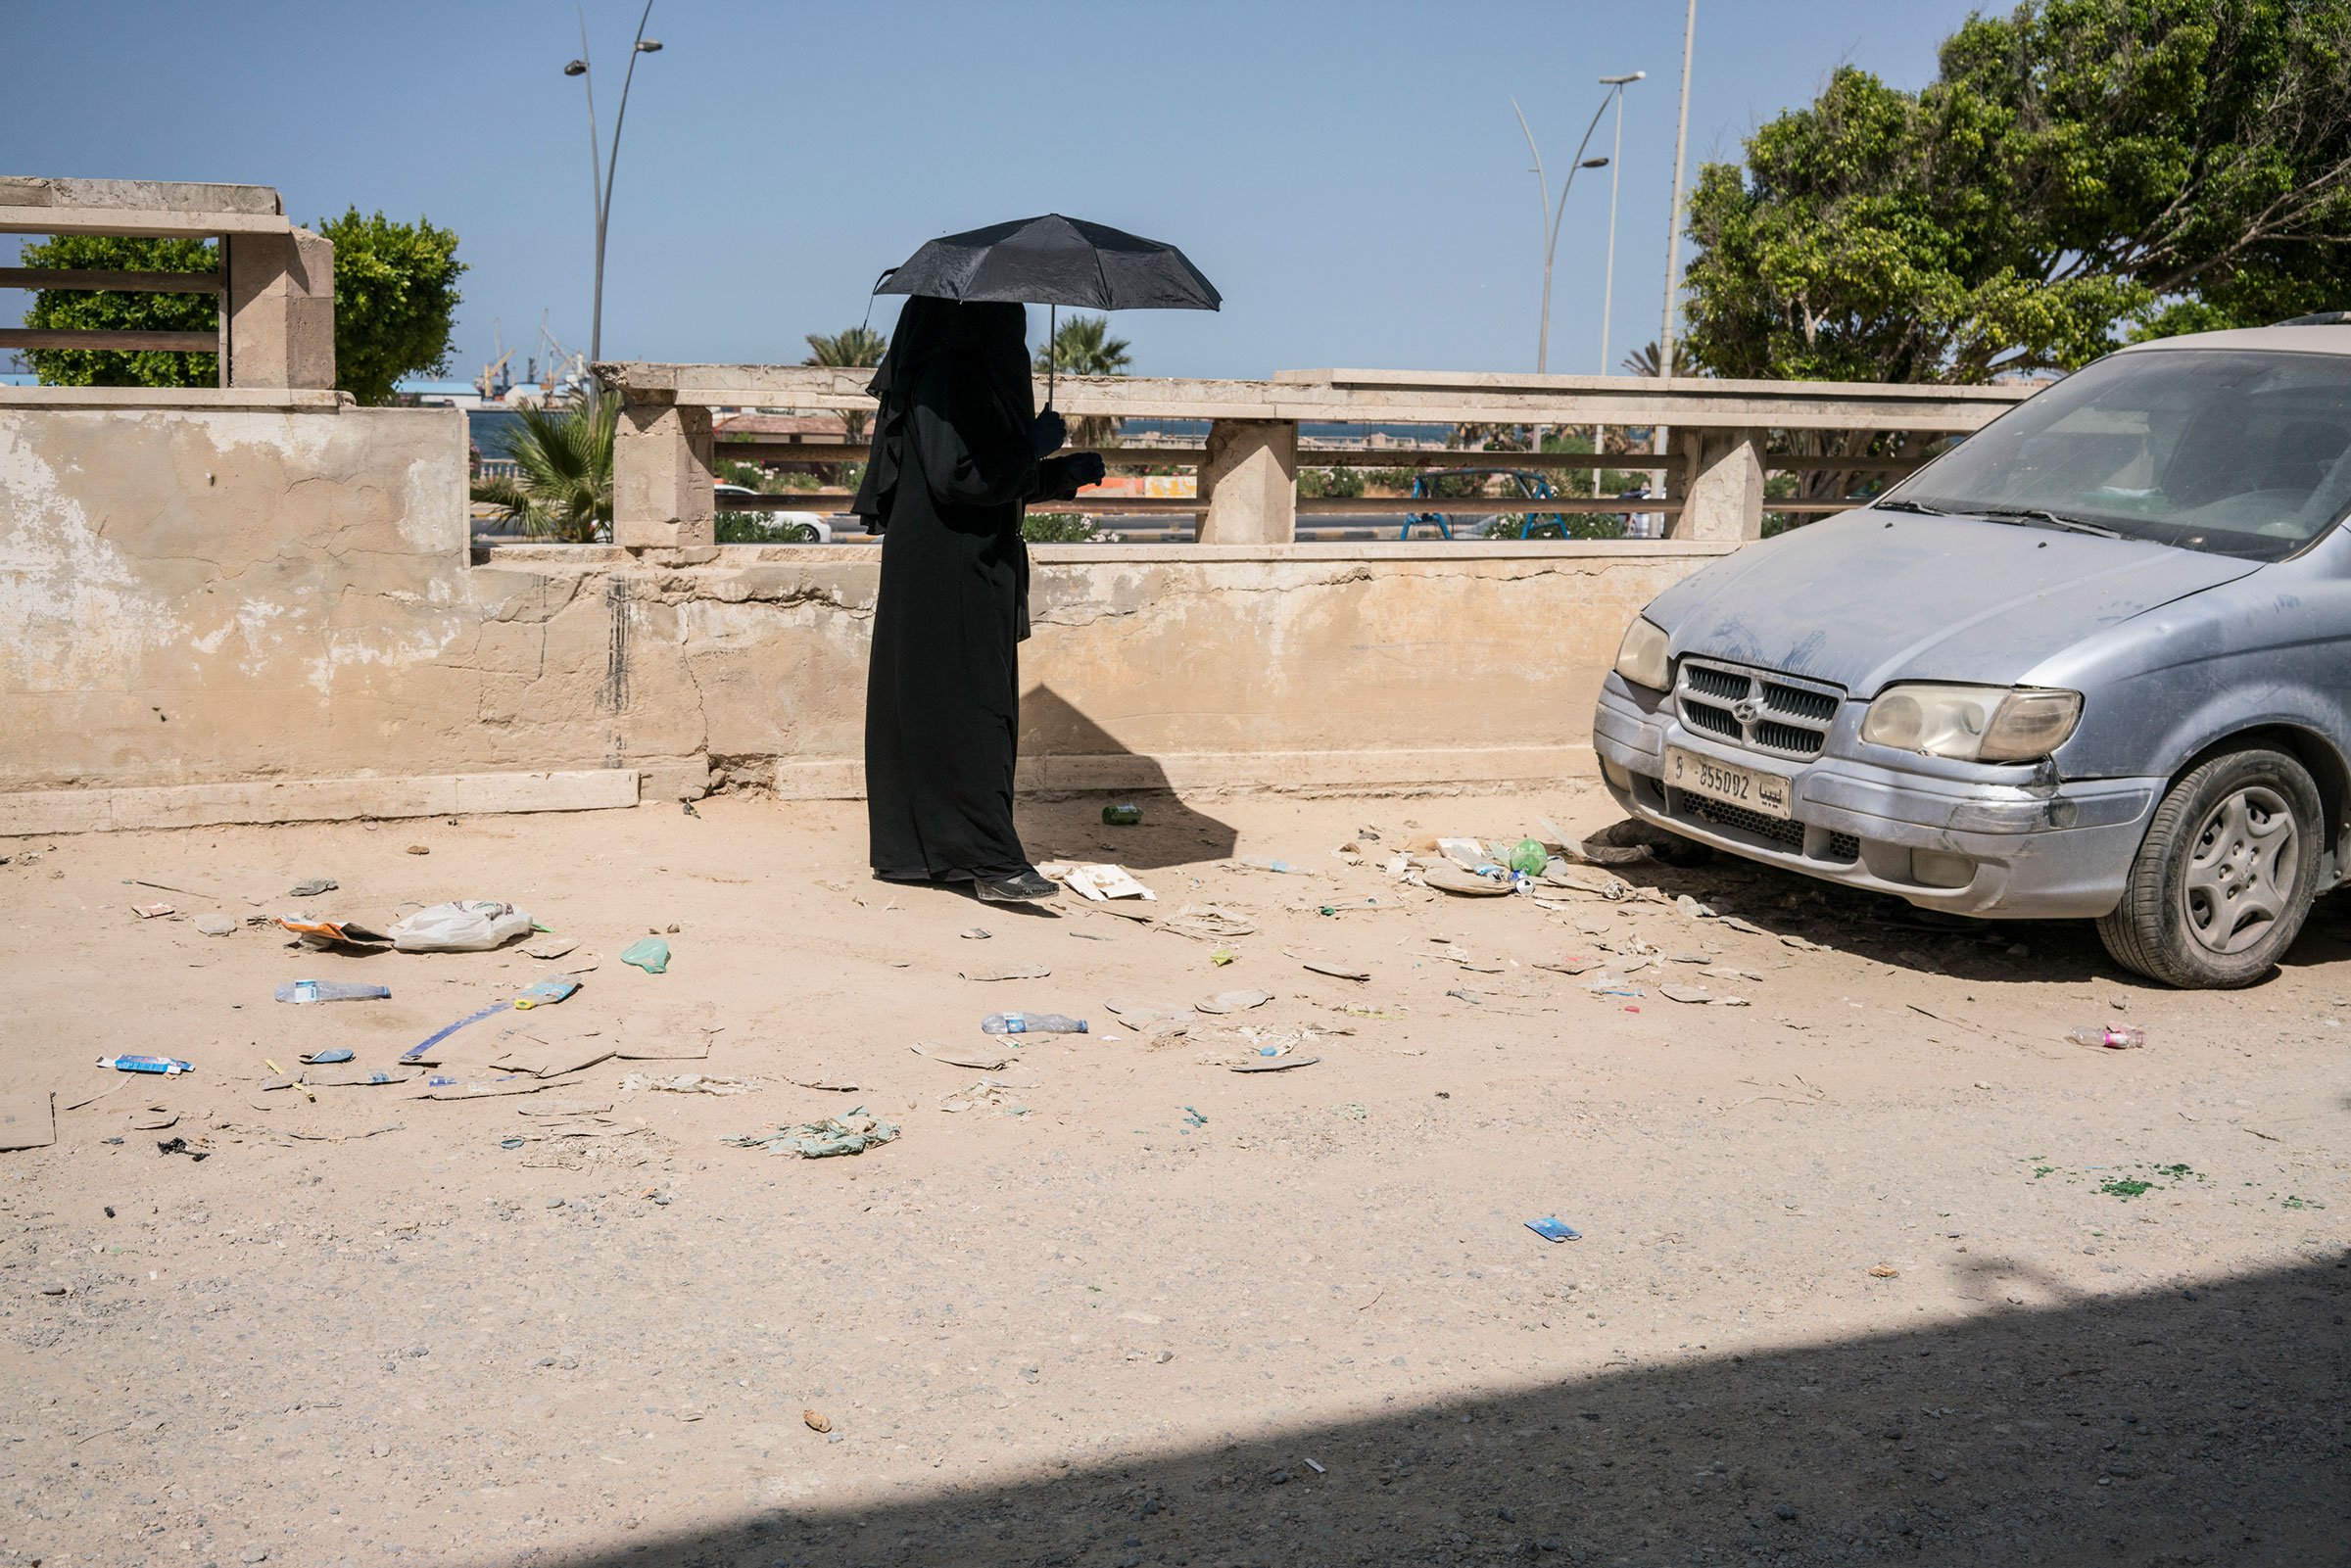 A woman on a road near the old city in Tripoli on July 5, 2019.